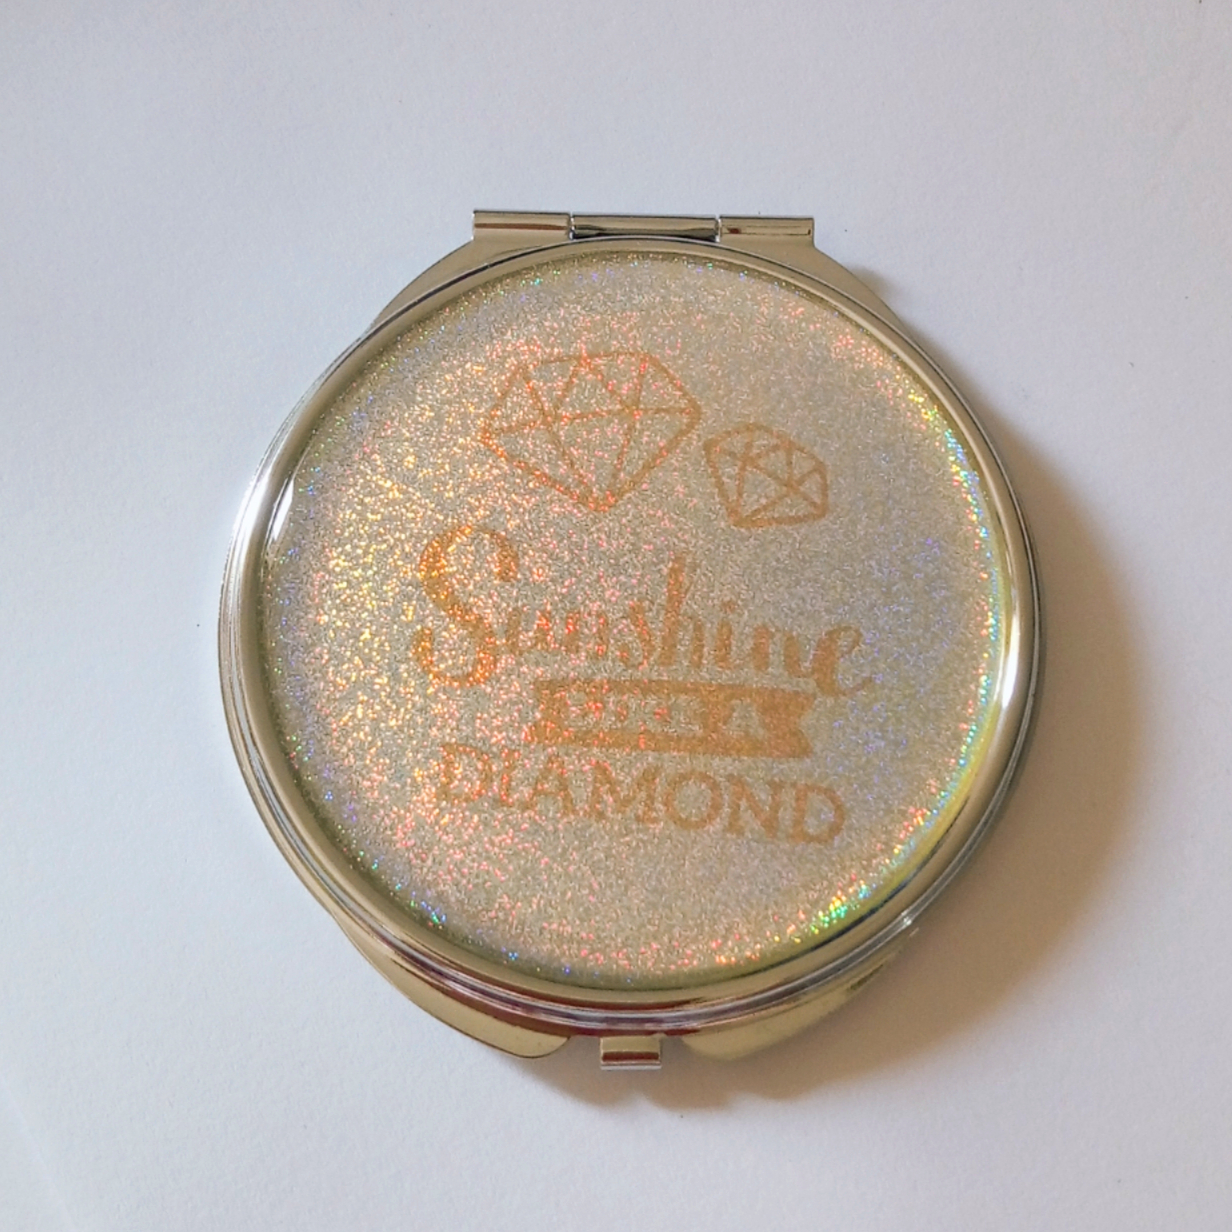 chrome plated compact mirror with laser color effect for poorsight makeup